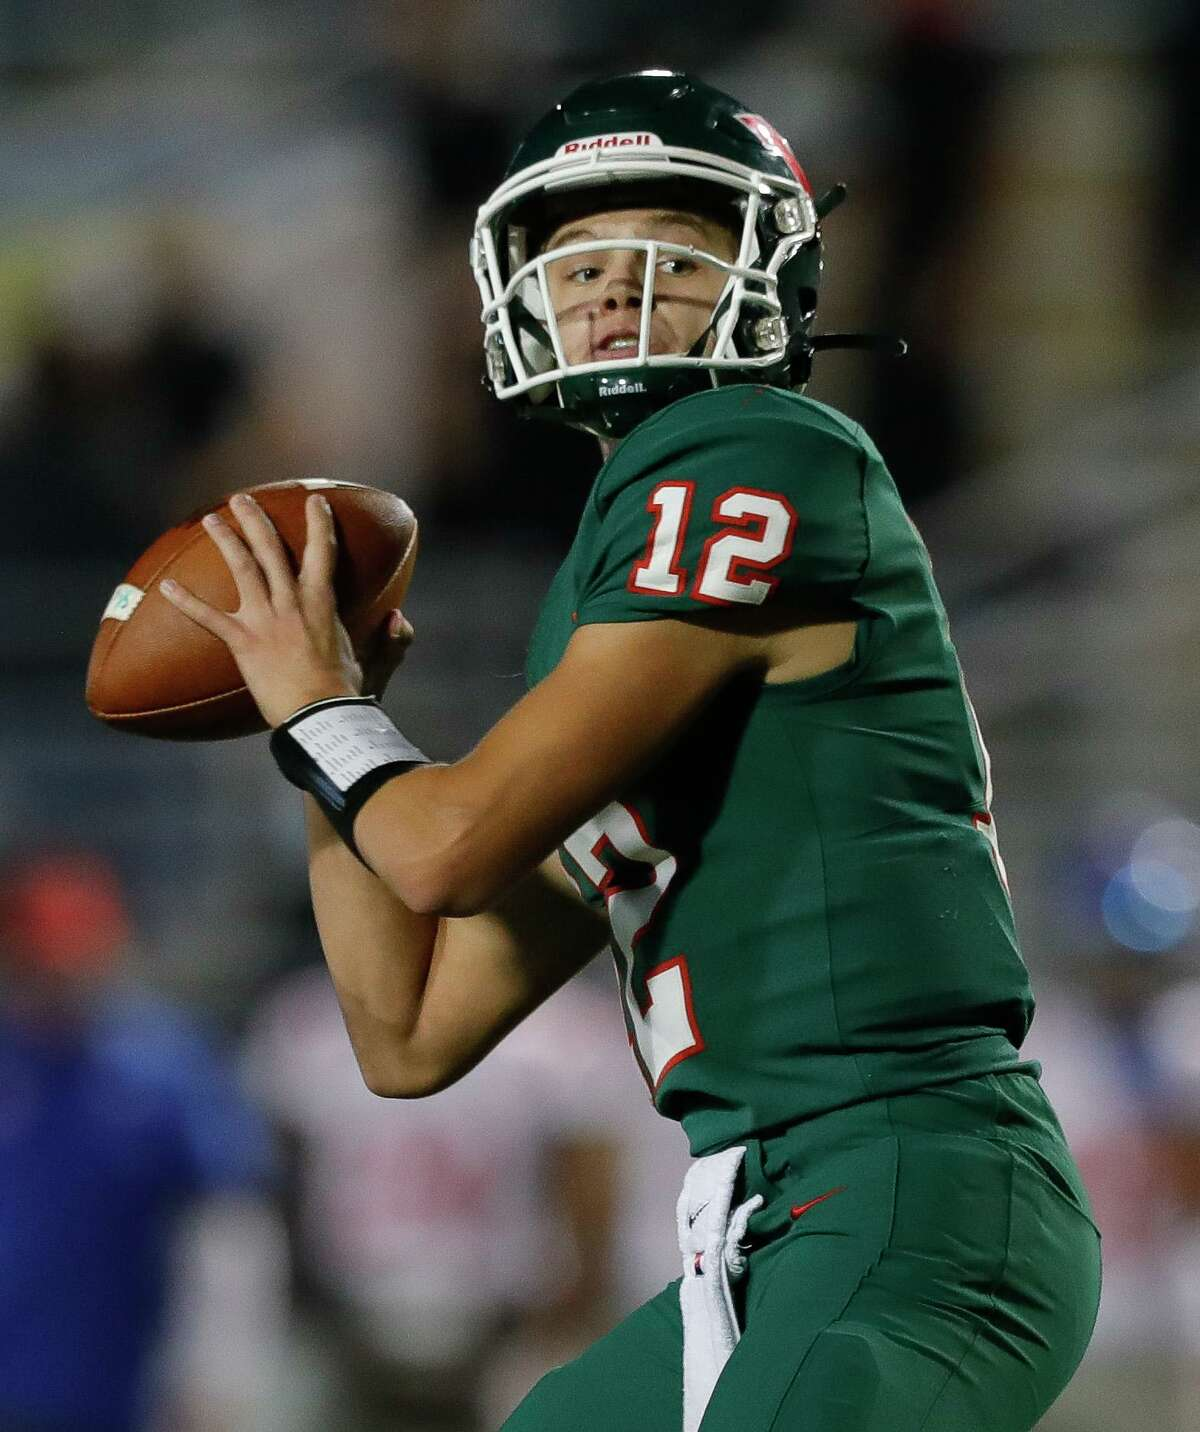 The Woodlands quarterback Connor Dechiro (12) drops back for a 15-yard touchdown pass to wide receiver Jack Calhoun during the third quarter of a District 13-6A high school football game at Woodforest Bank Stadium, Friday, Nov. 6, 2020, in Shenandoah.